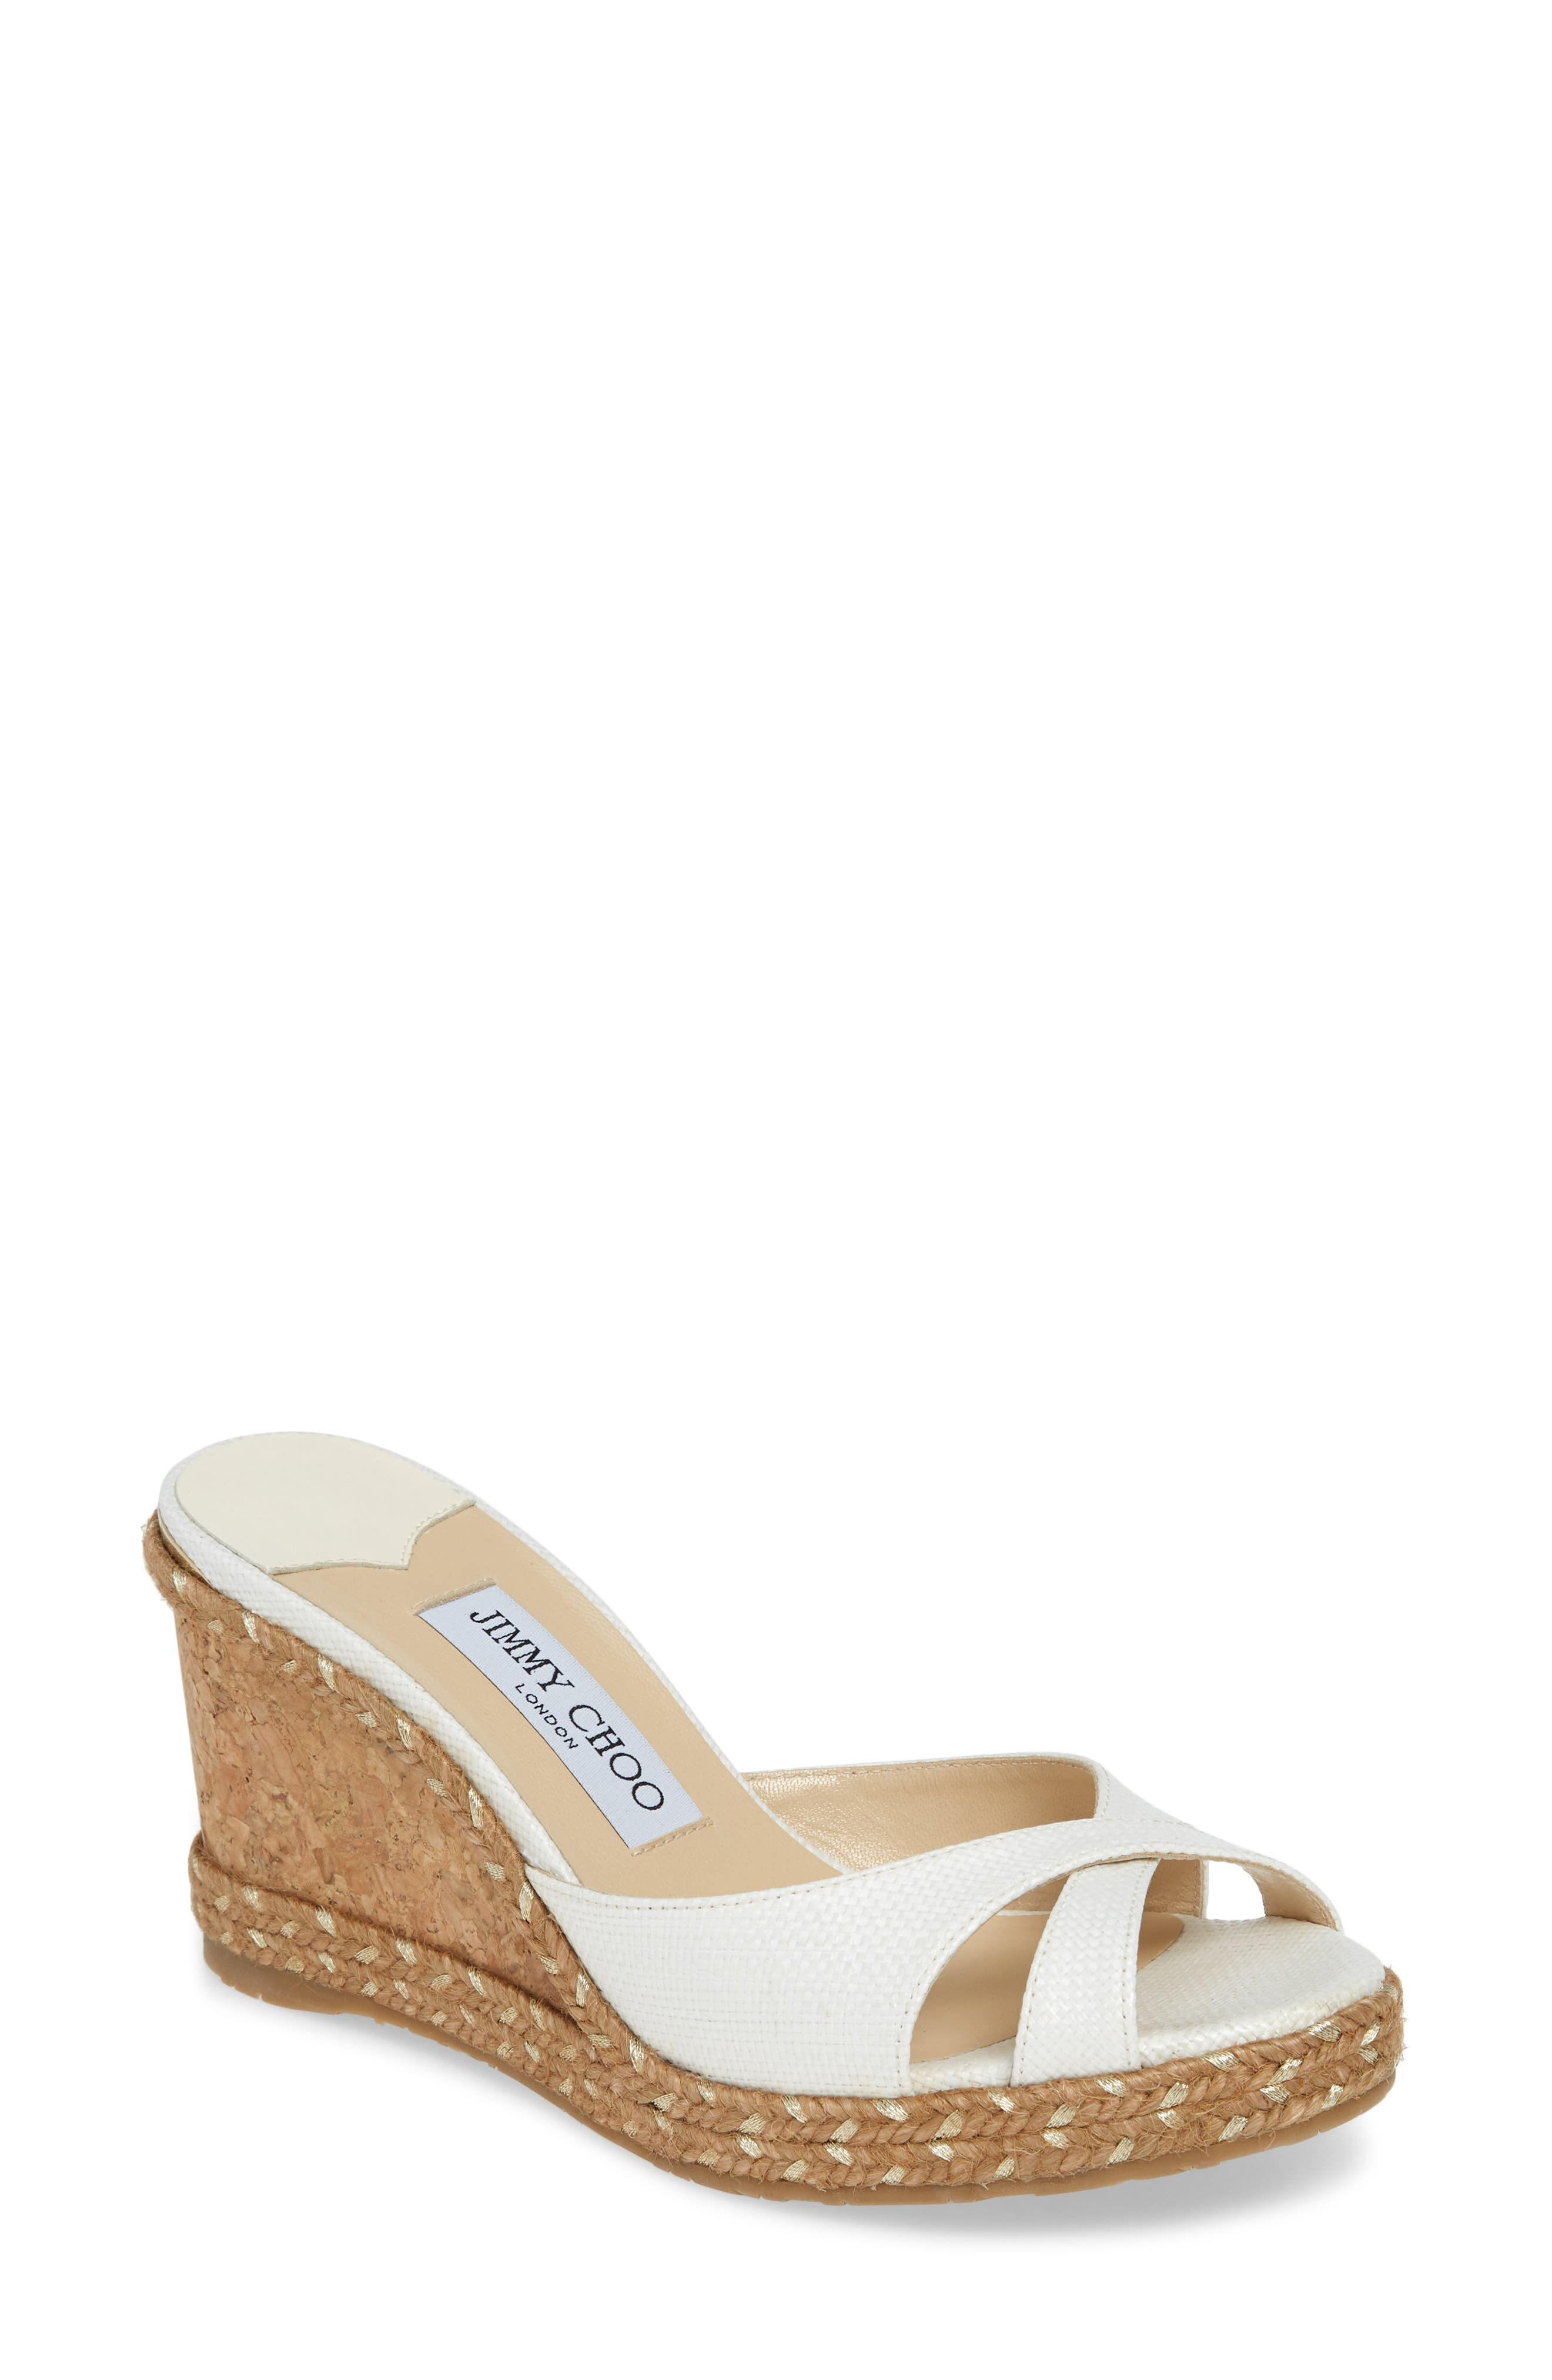 Jimmy Choo Slippers Almer Espadrille Wedge Sandal